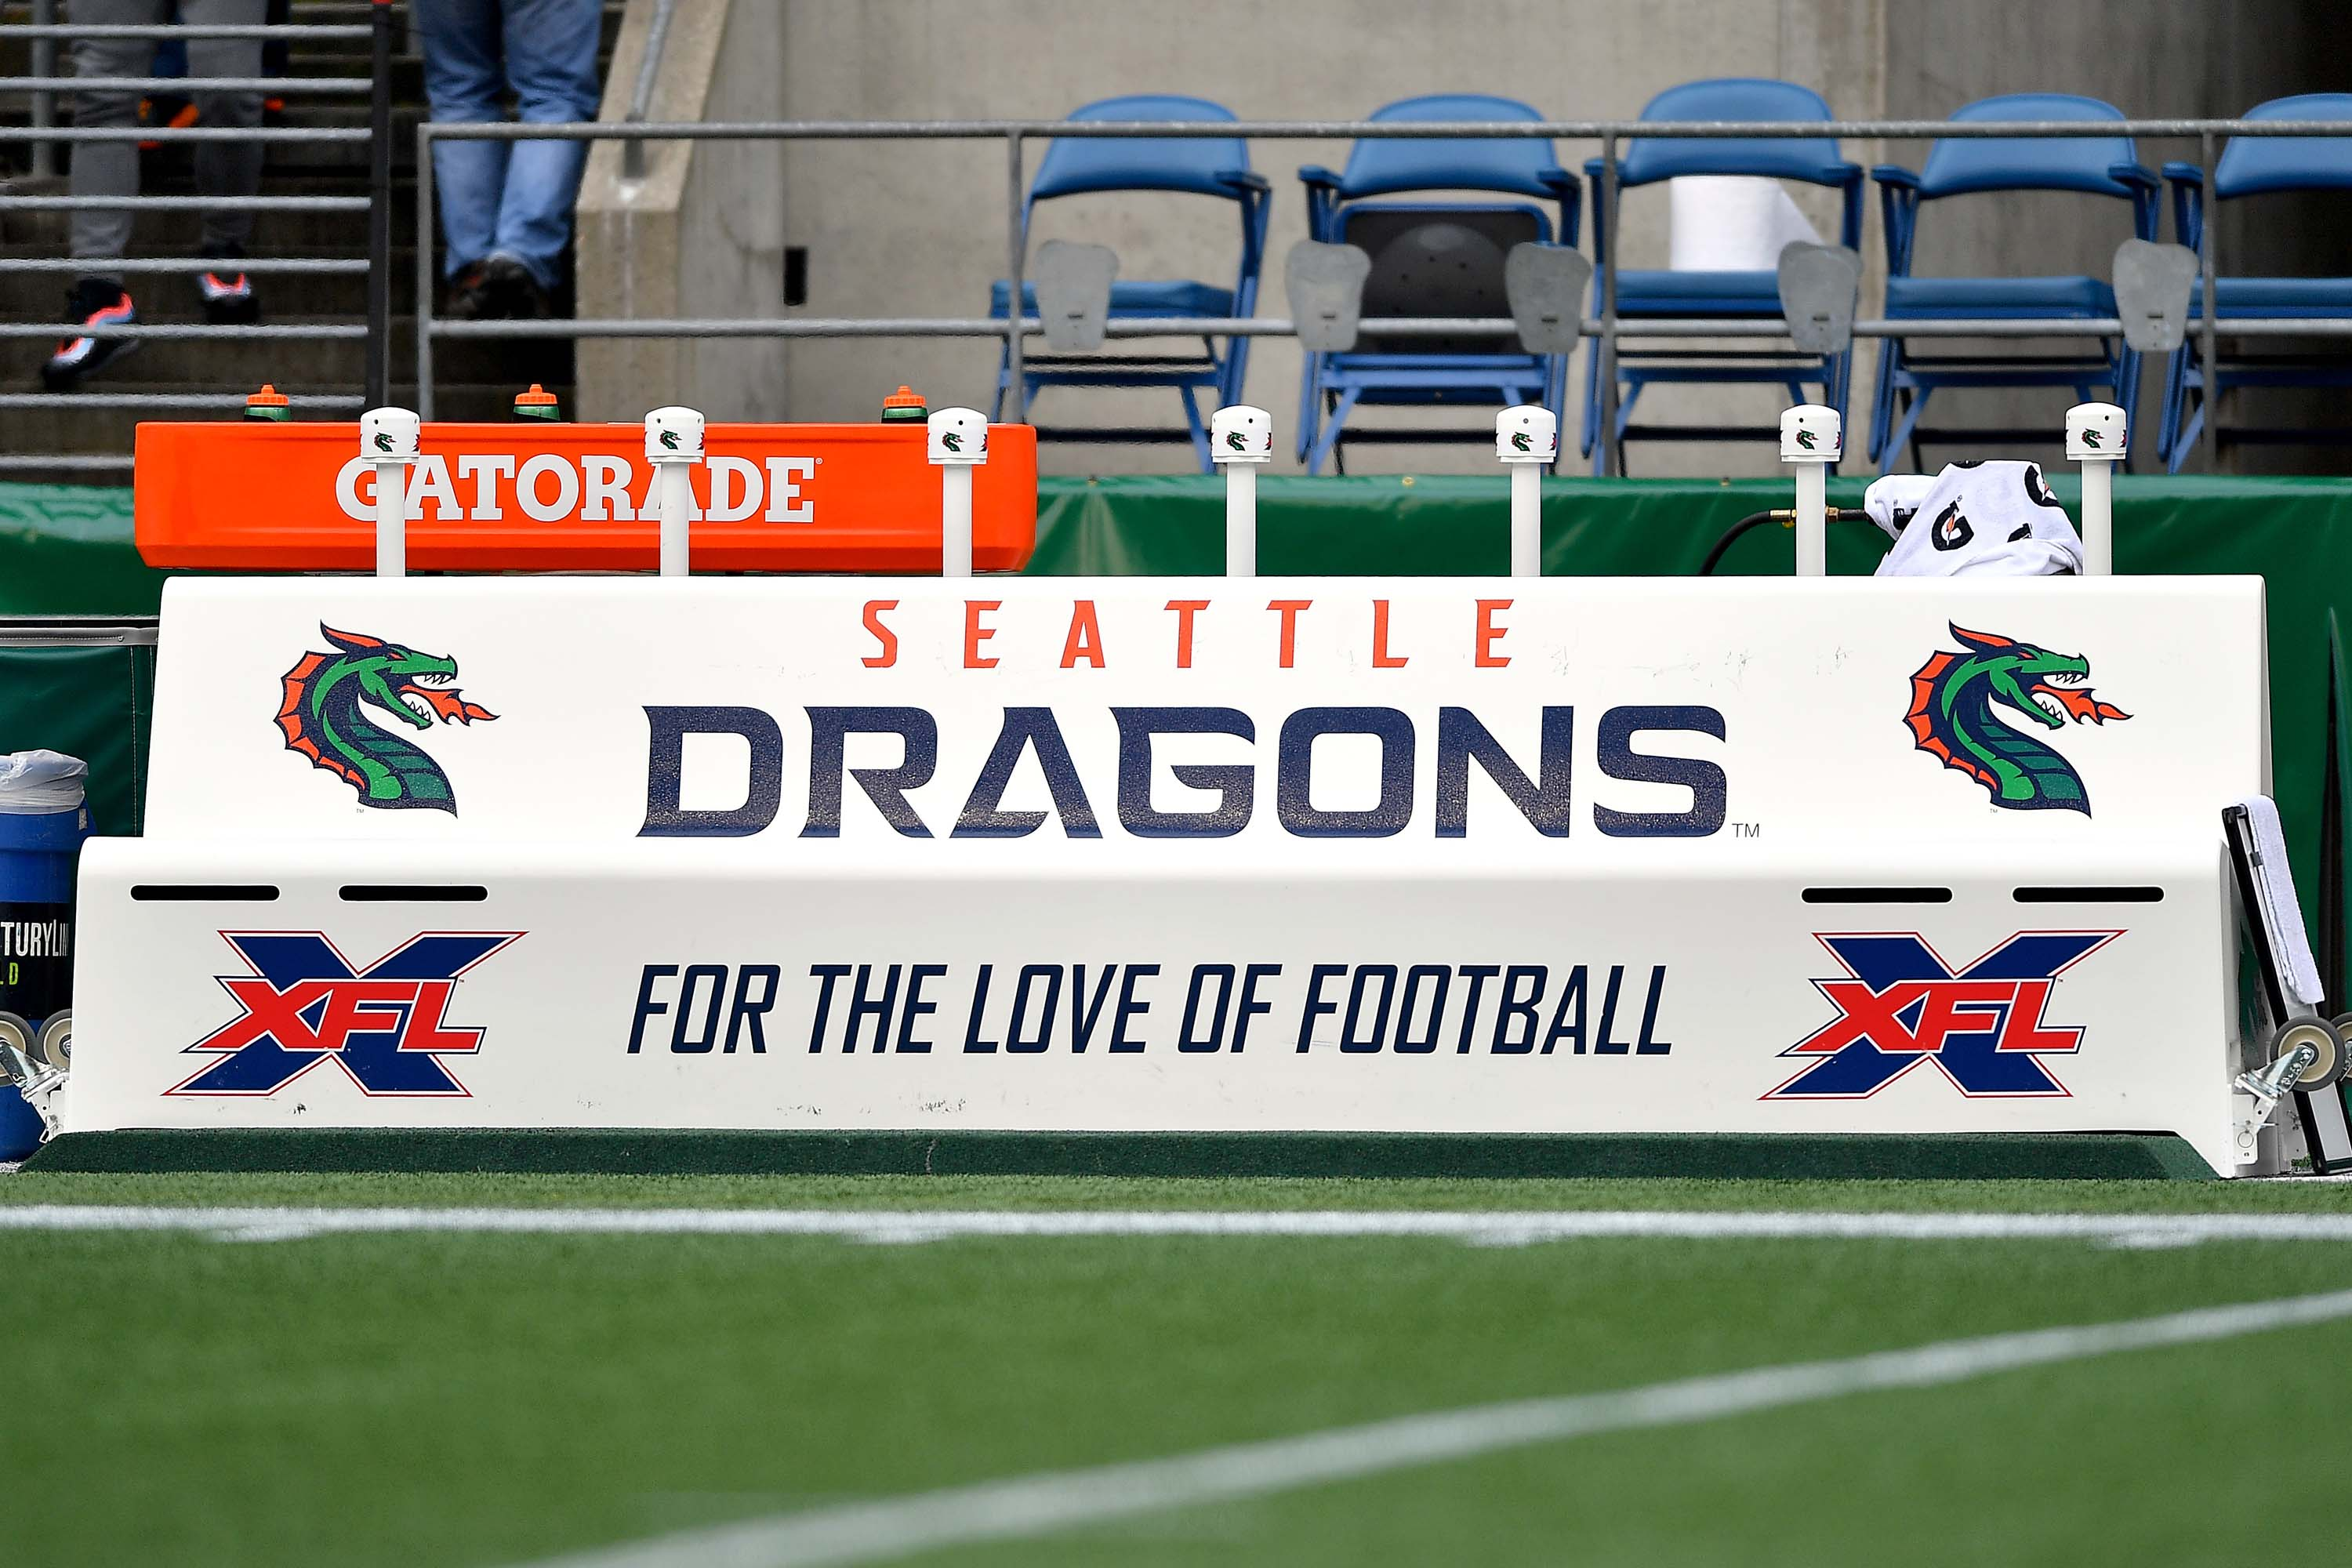 A general view of the Seattle Dragons team bench ahead of the game between the Seattle Dragons and the Dallas Renegades at CenturyLink Field in Seattle, Washington, on February 22.